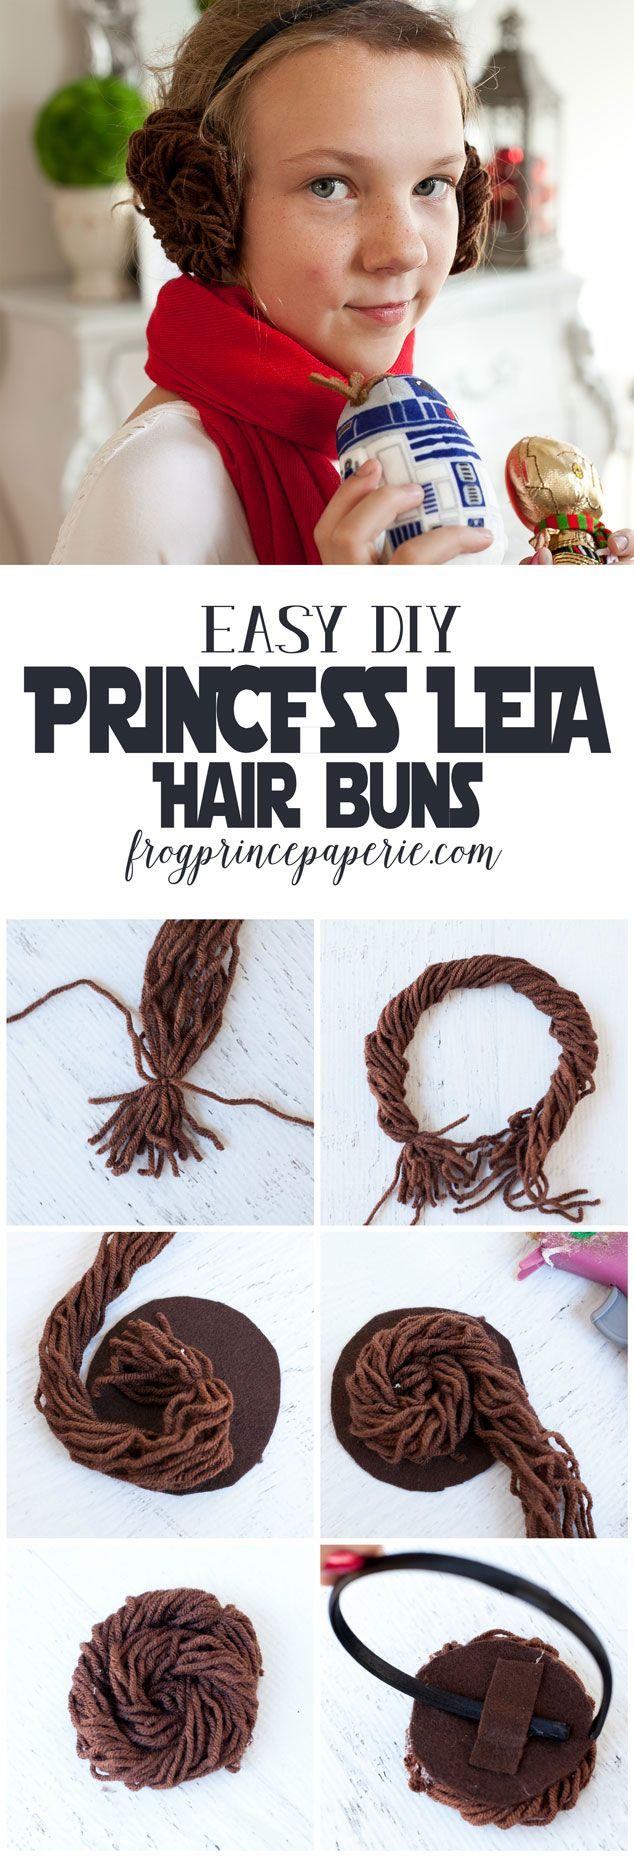 10 minute DIY Princess Leia buns from headbands - get ready for Star Wars!